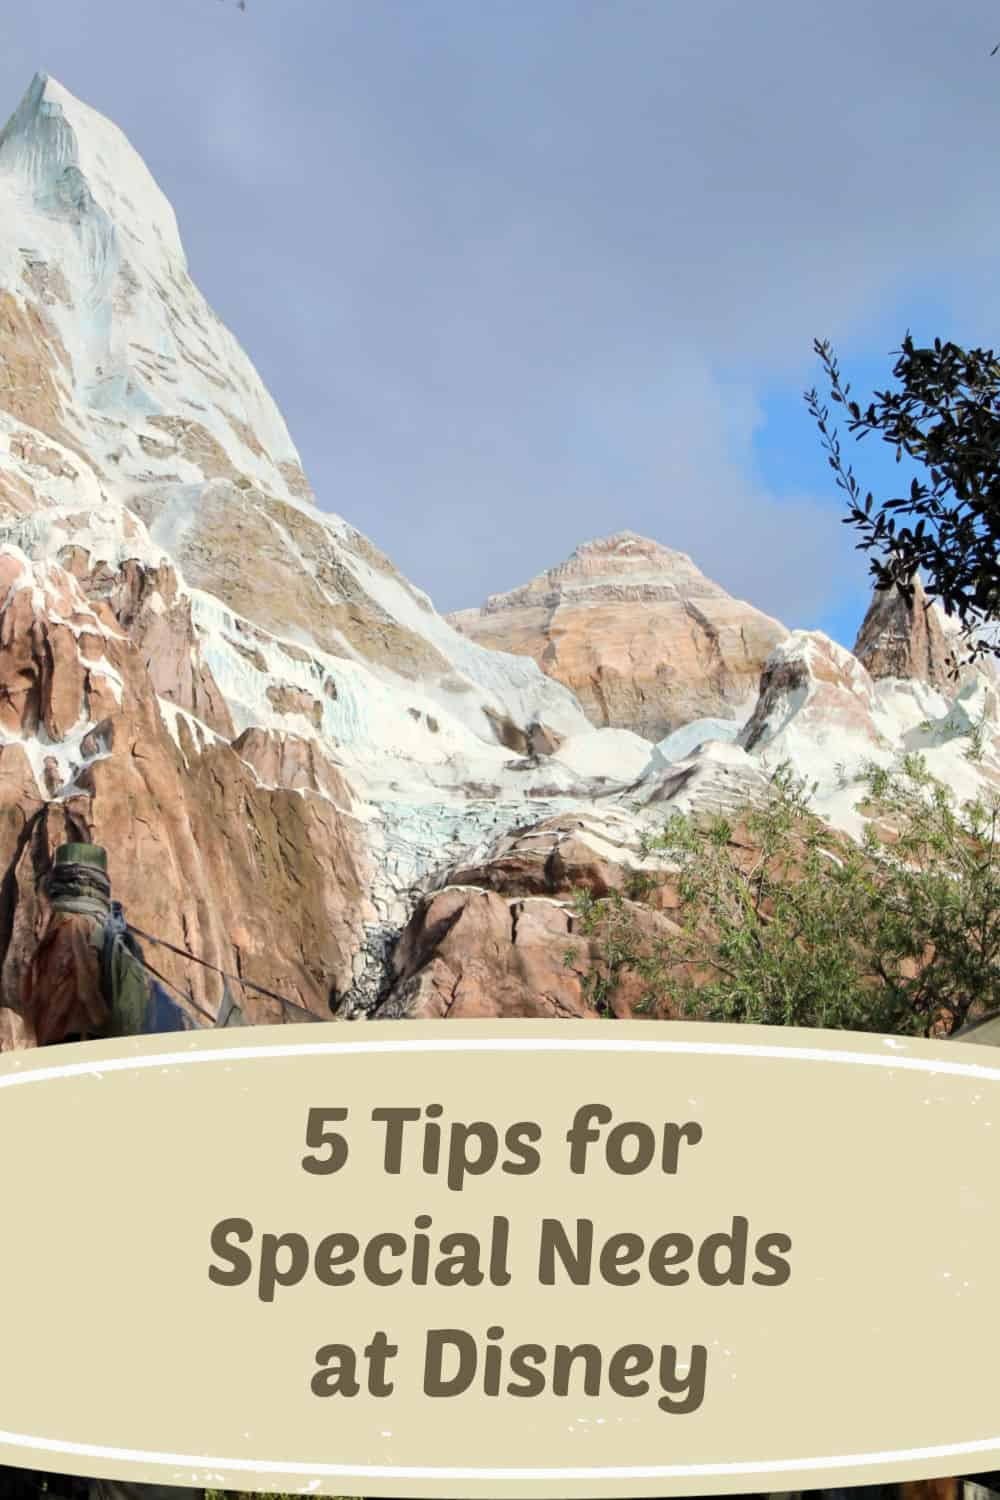 5 Tips for Special Needs at Disney - Avoid a bad Disney day with special needs with these tips.